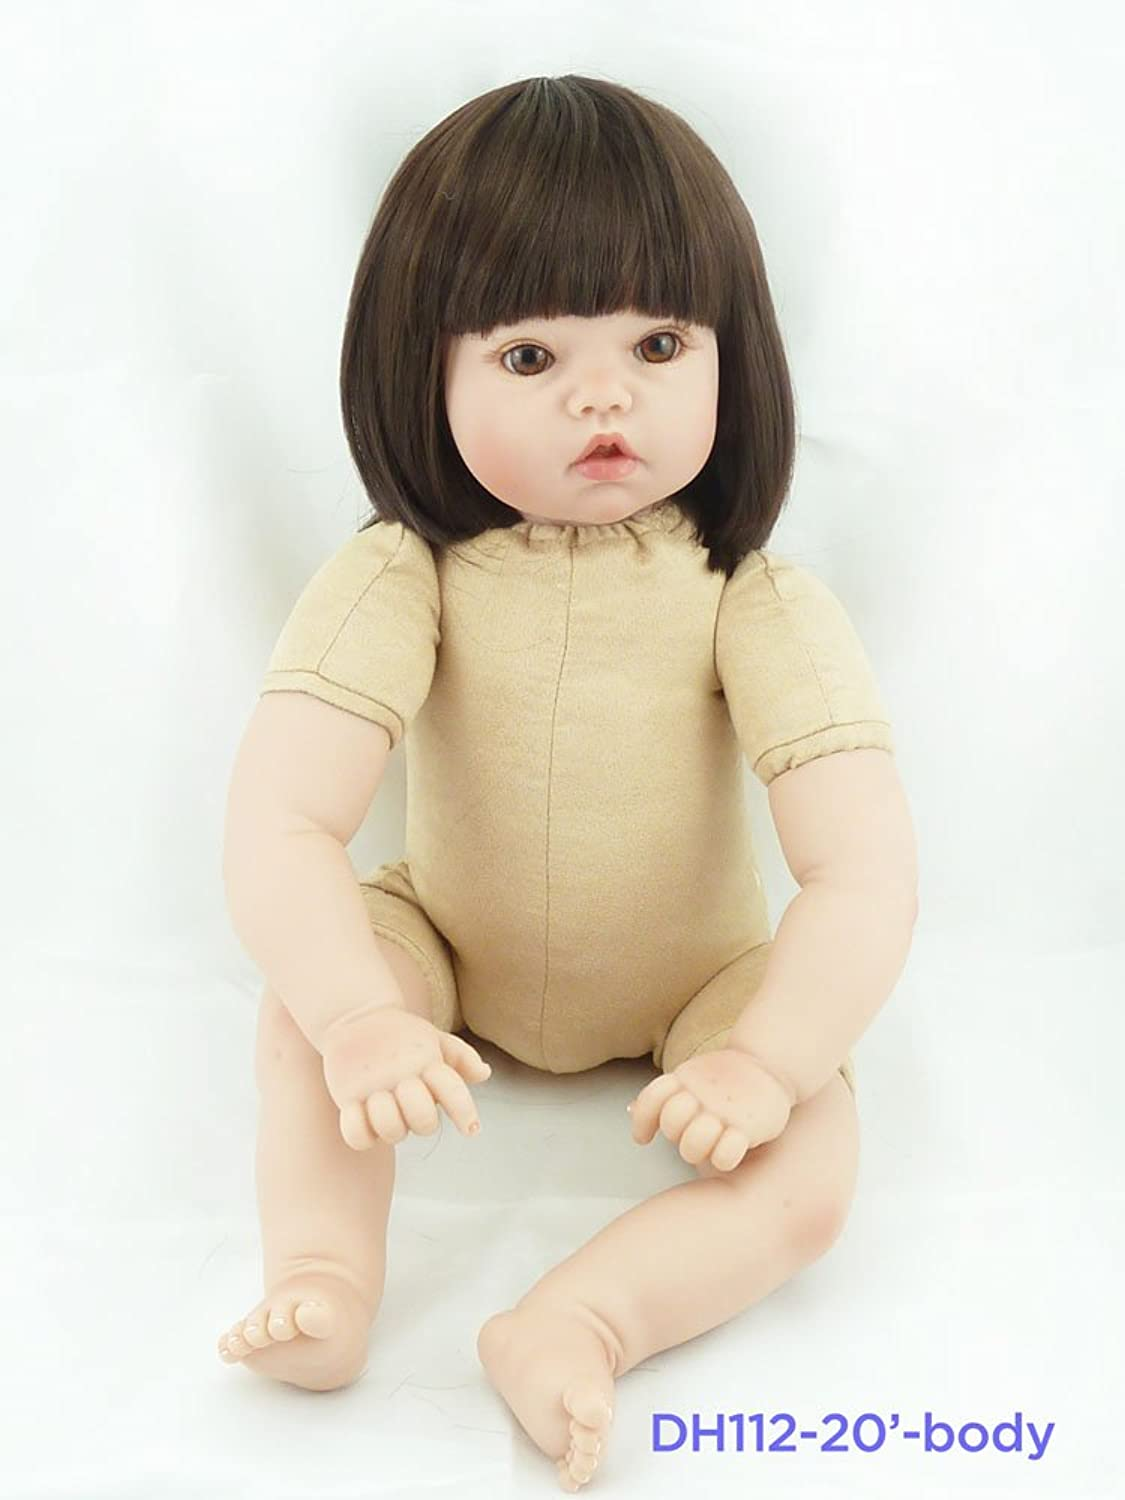 Pinky 2022 Inch Handmade Soft Body Silicone Babies Reborn Baby Doll Alive Real Life Like Looking Newborn Dolls Girl Toy Body (DH112body20 )